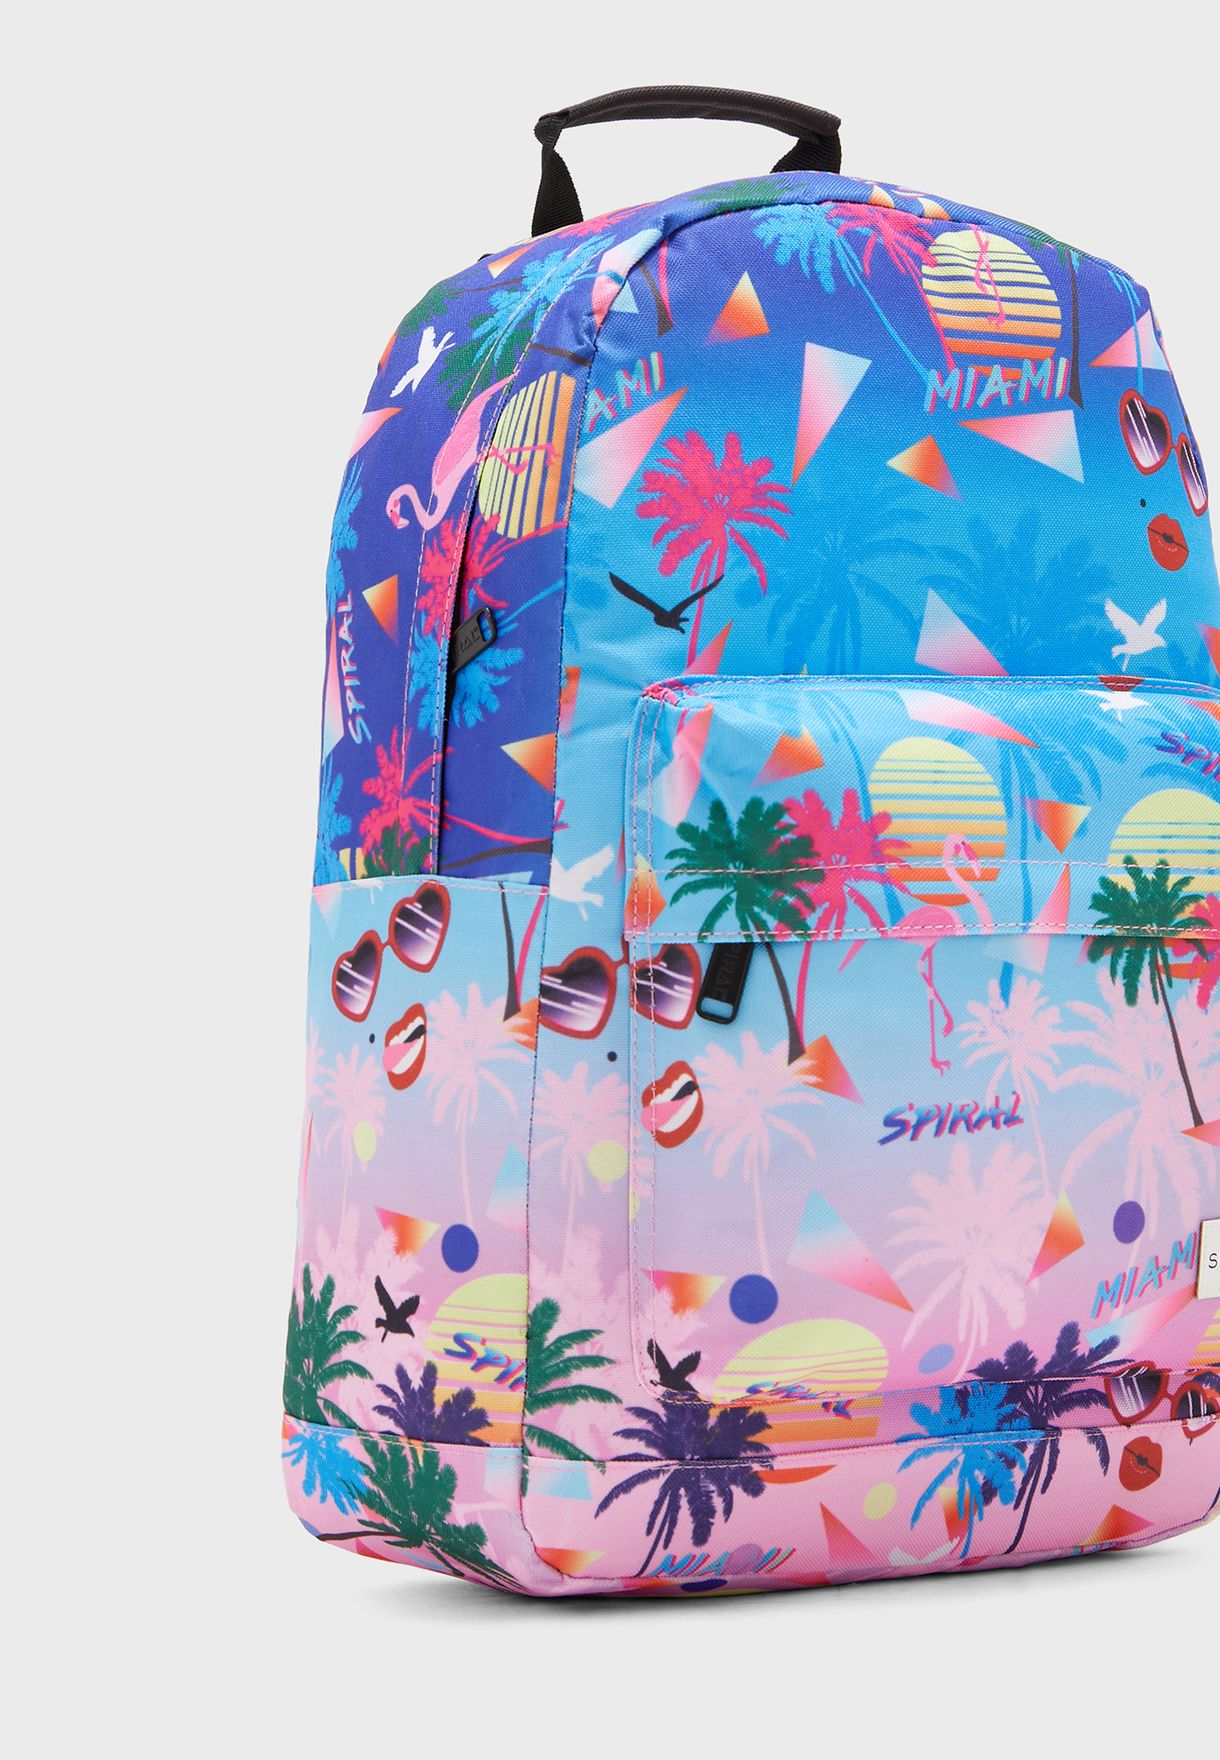 Miami Front Zip Pocket Backpack